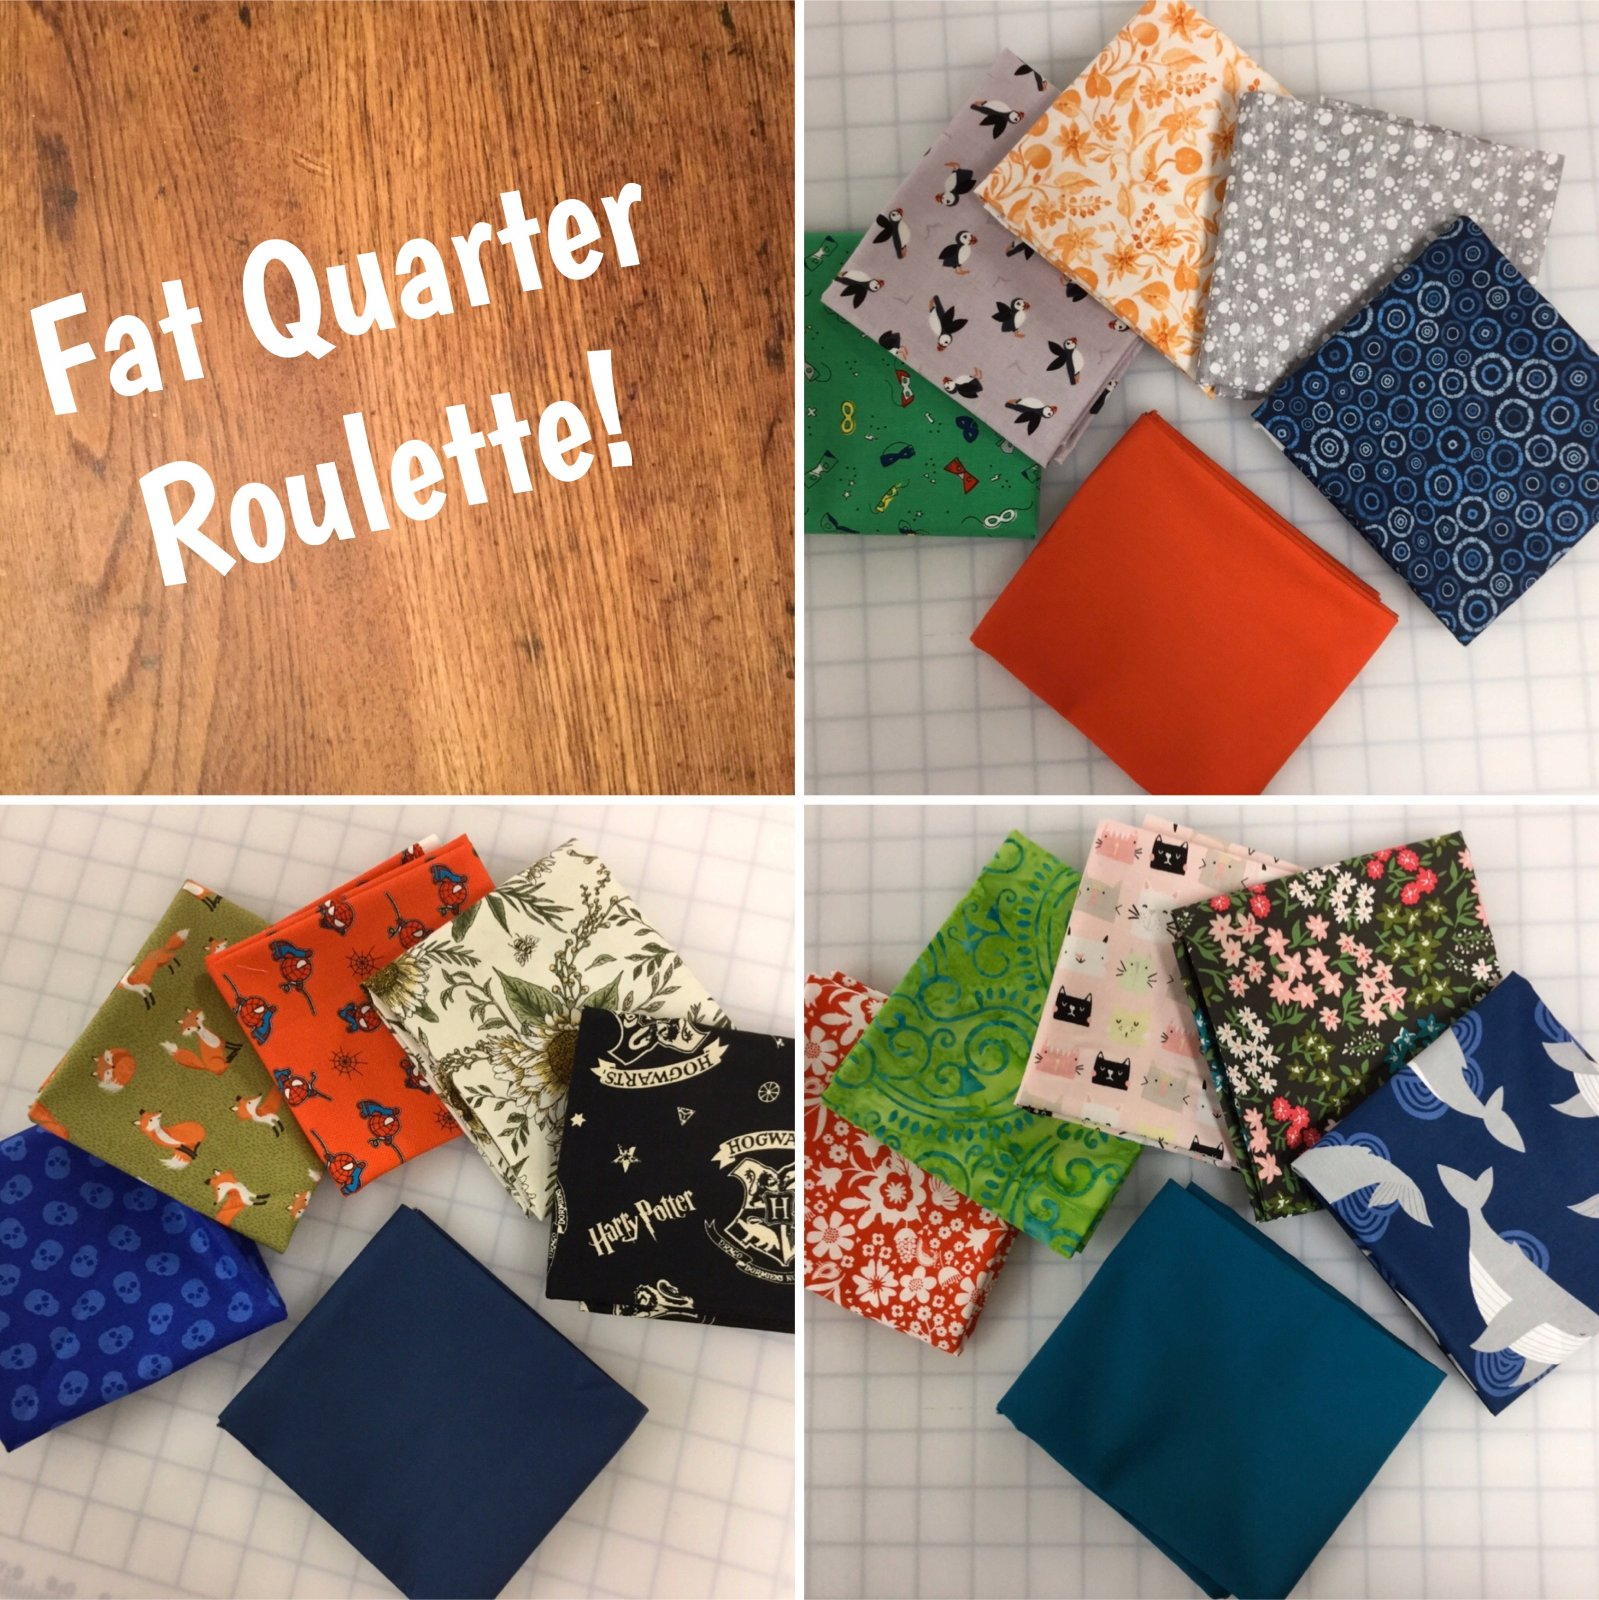 Fat Quarter Roulette! Mystery 5-pack with 1 KONA FQ Free!